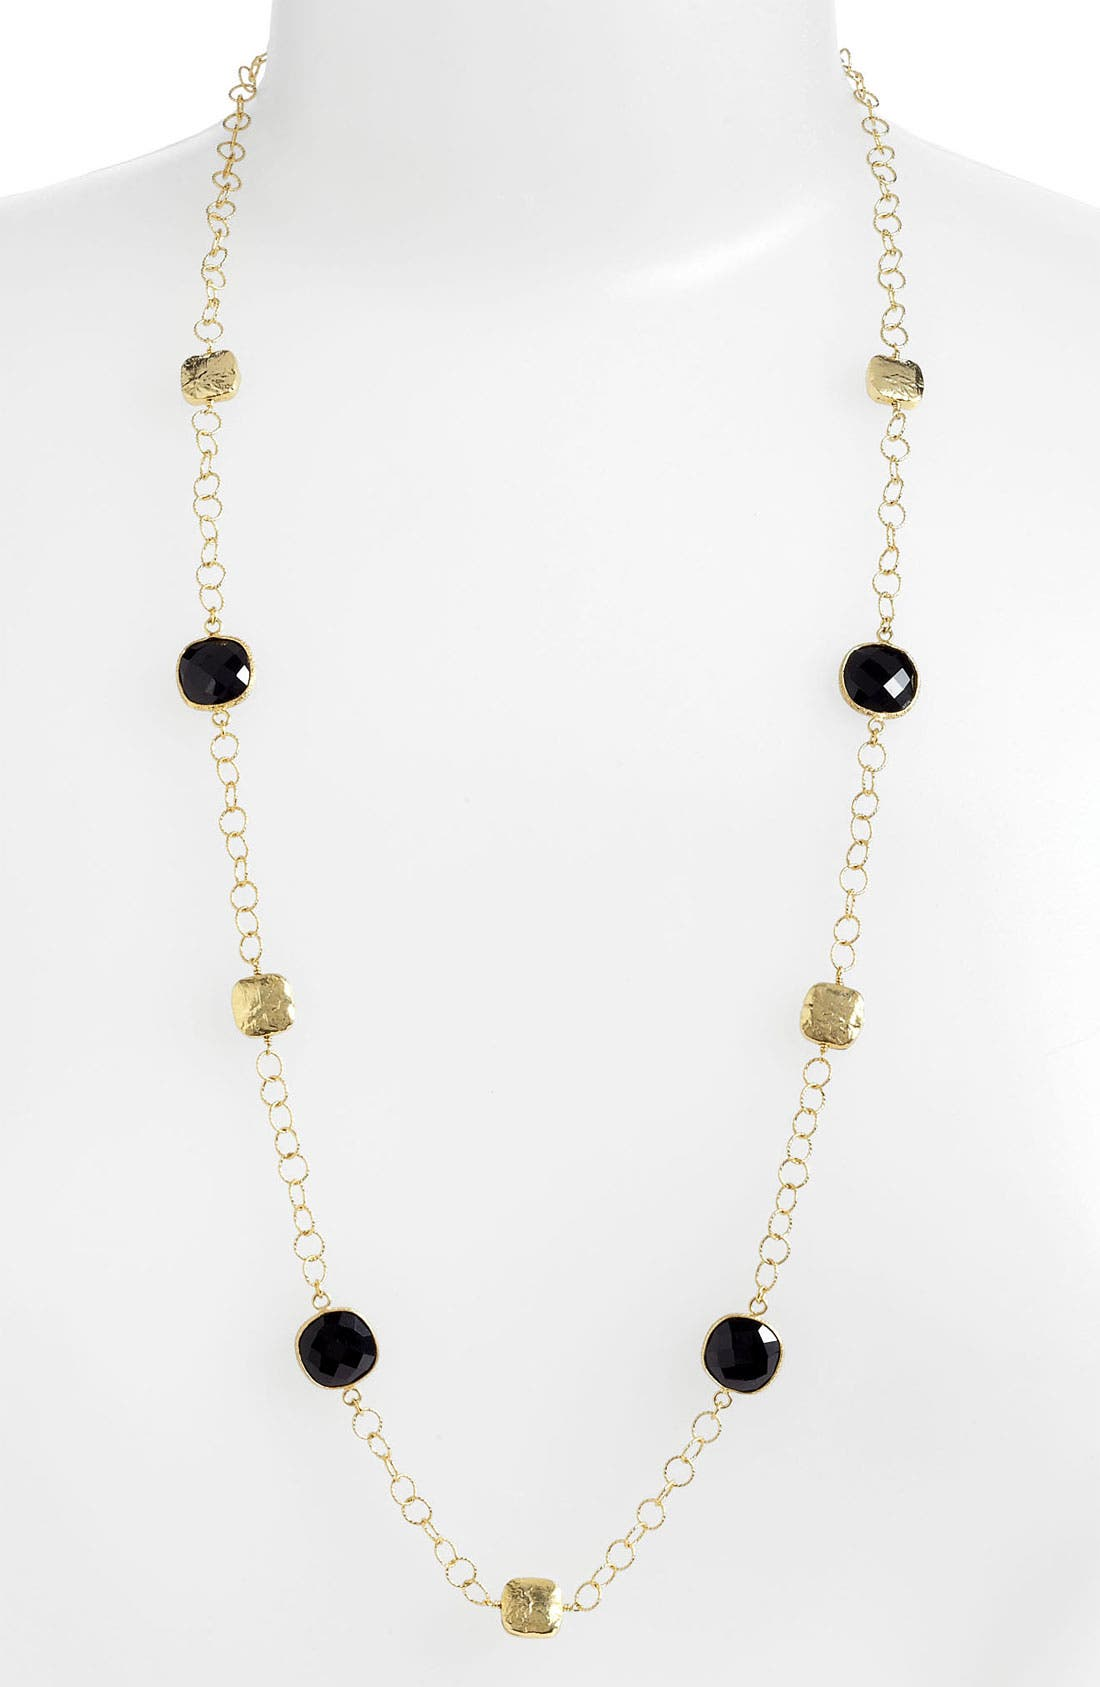 Alternate Image 1 Selected - Argento Vivo 'Bauble Bar' Long Square Station Necklace (Nordstrom Exclusive)